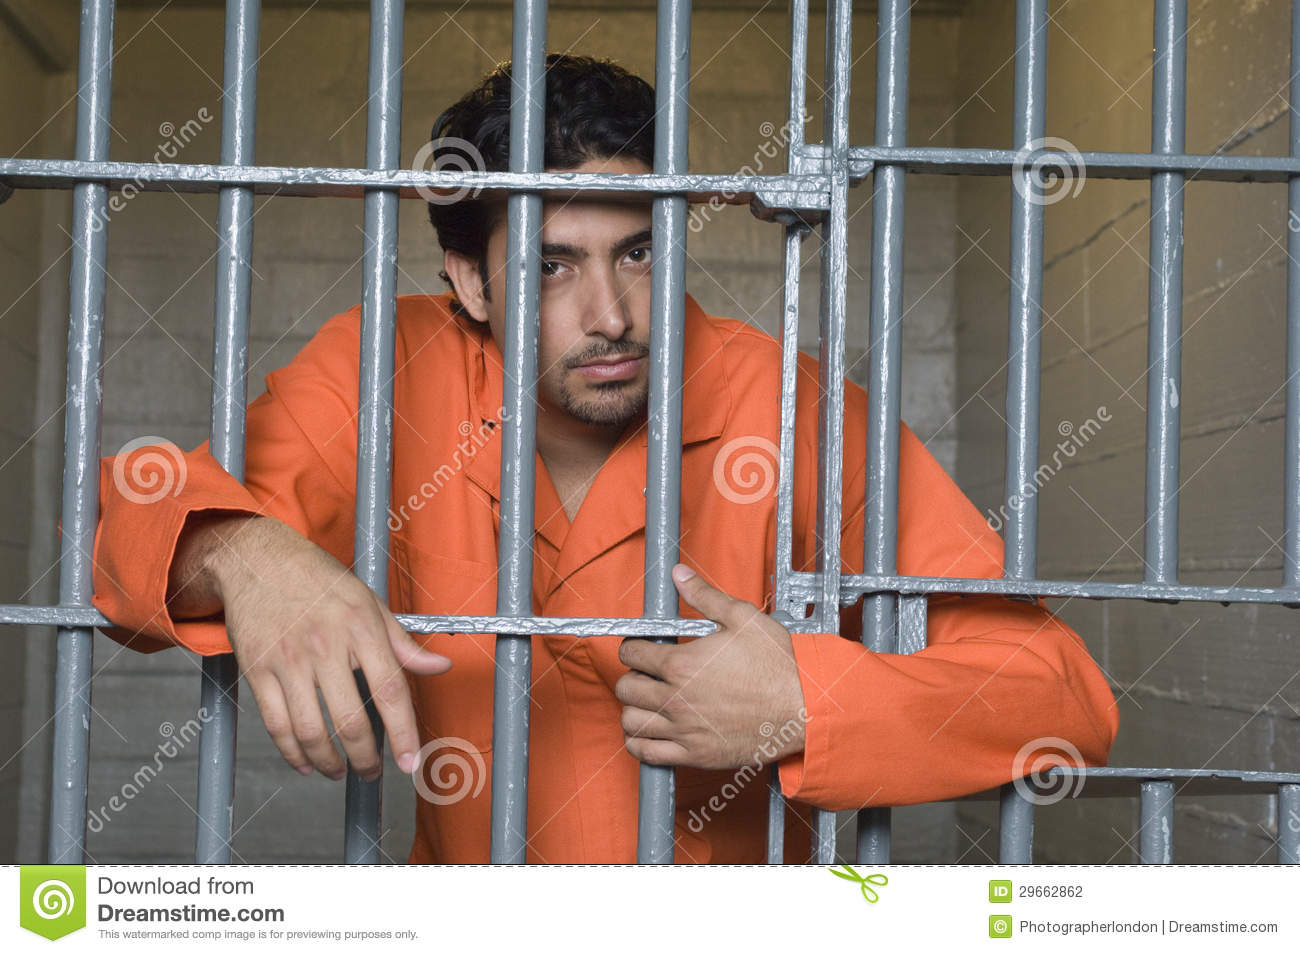 language in prison Any fan of cops-crooks-and-courtrooms dramas knows that solitary confinement is a treat reserved for highly volatile criminals, or used to punish inmates for various misdeeds.